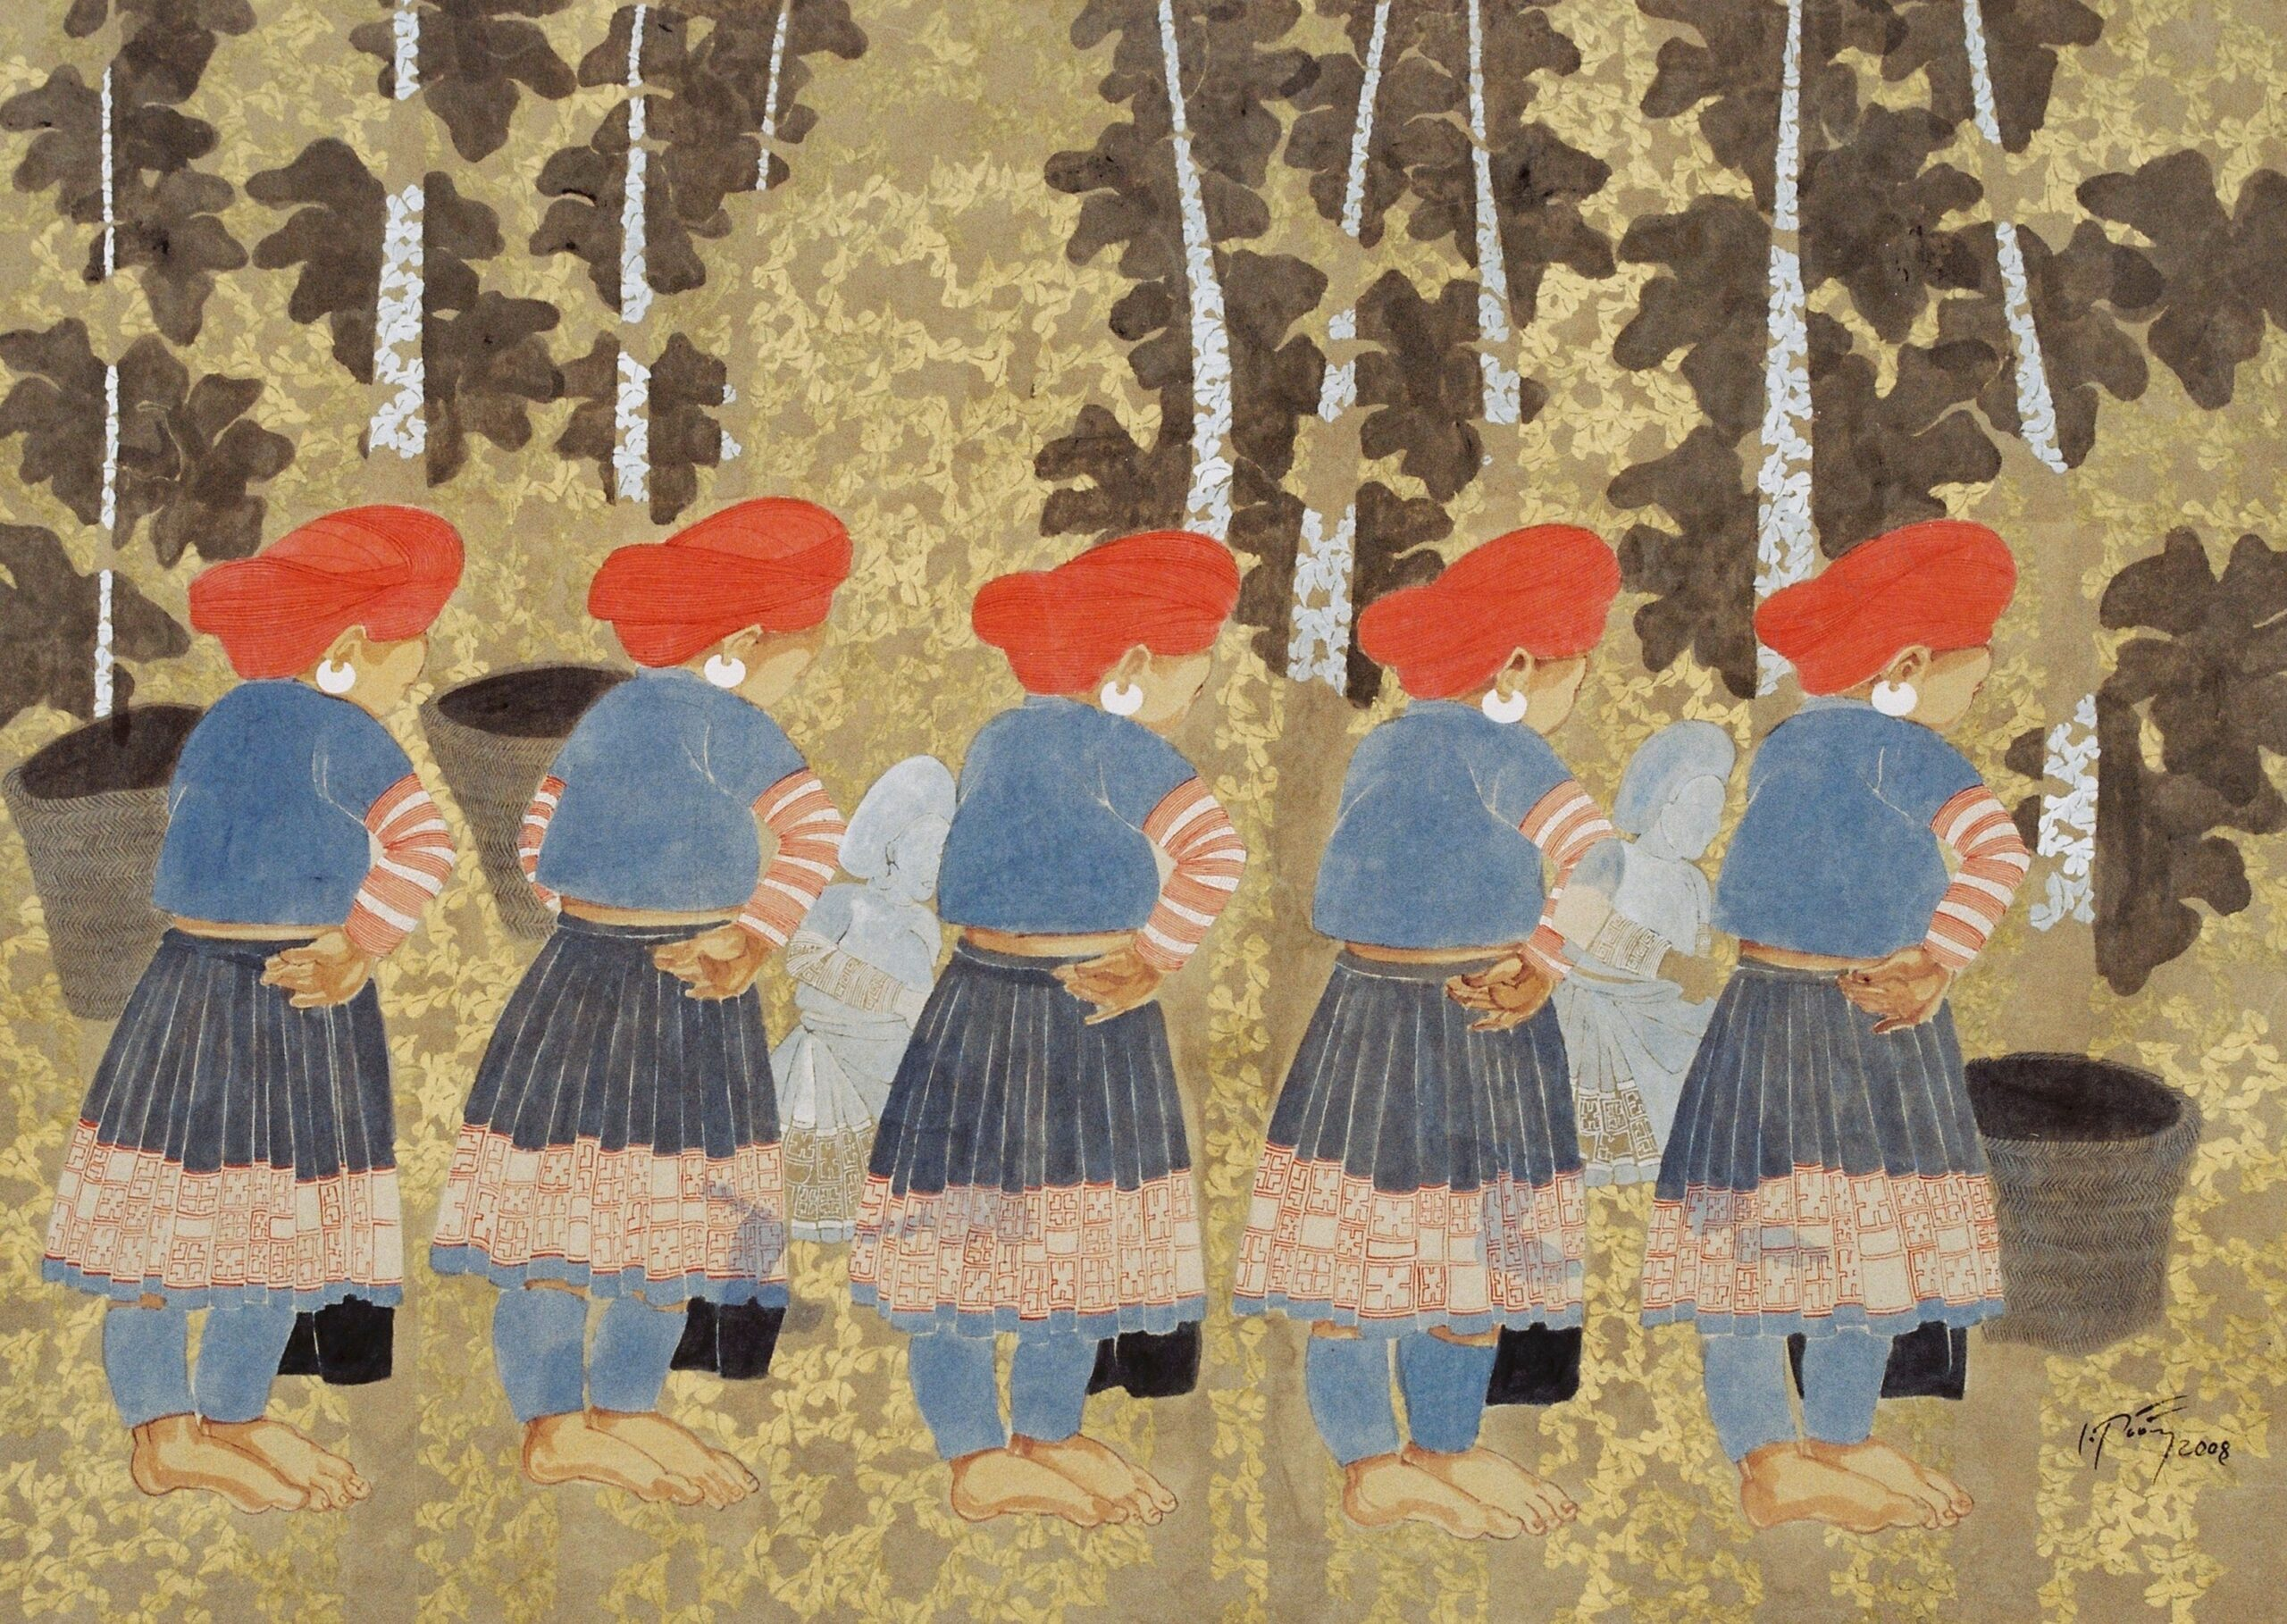 Groves of Gold by Dinh Thi Tham Poong, watercolour on handmade paper, 2008, 80 x 110 cm